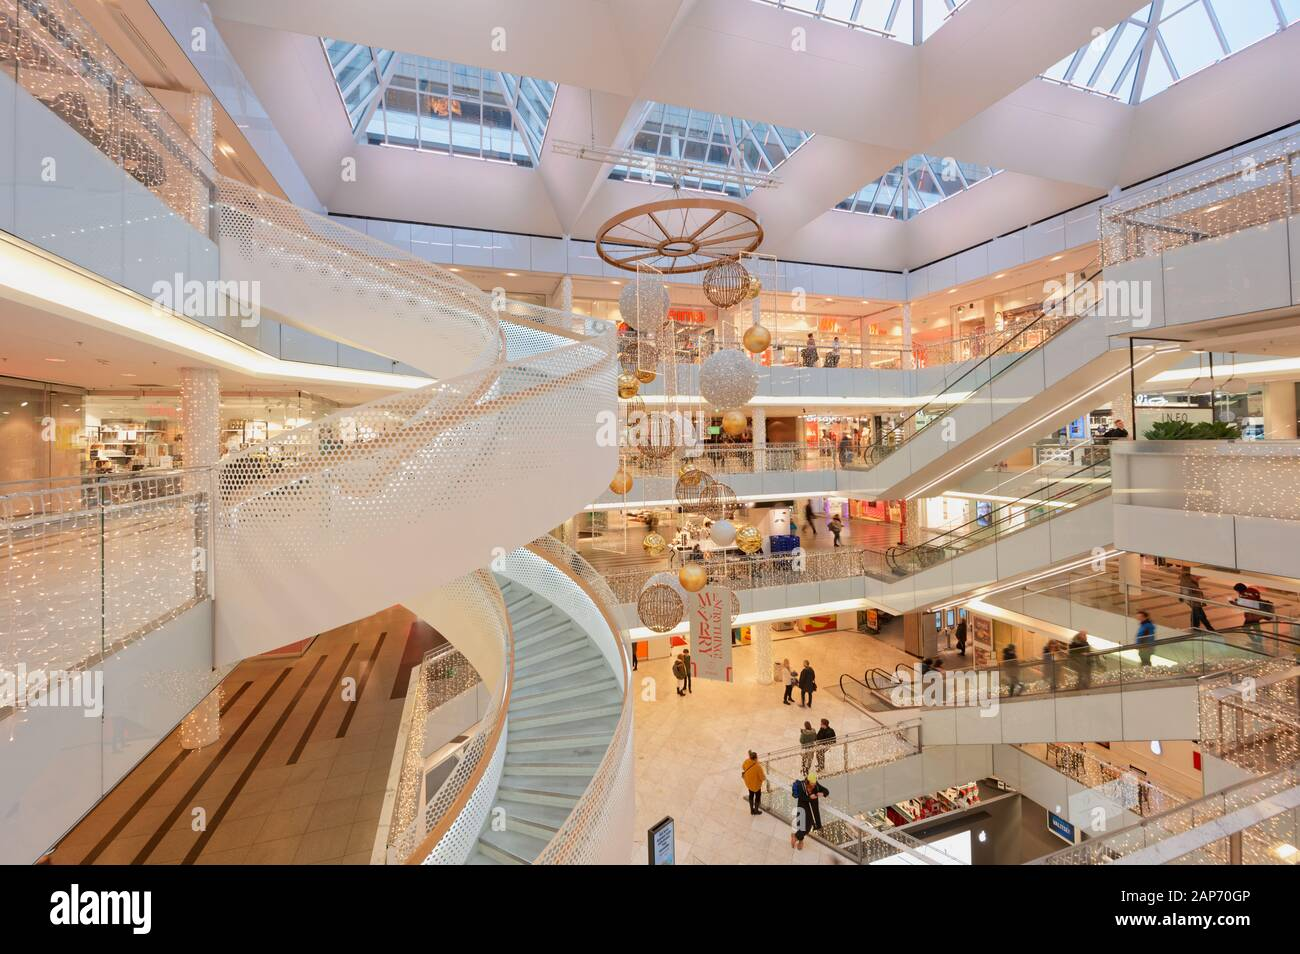 Christmas Shopping Forums 2020 Helsinki Shopping Center High Resolution Stock Photography and